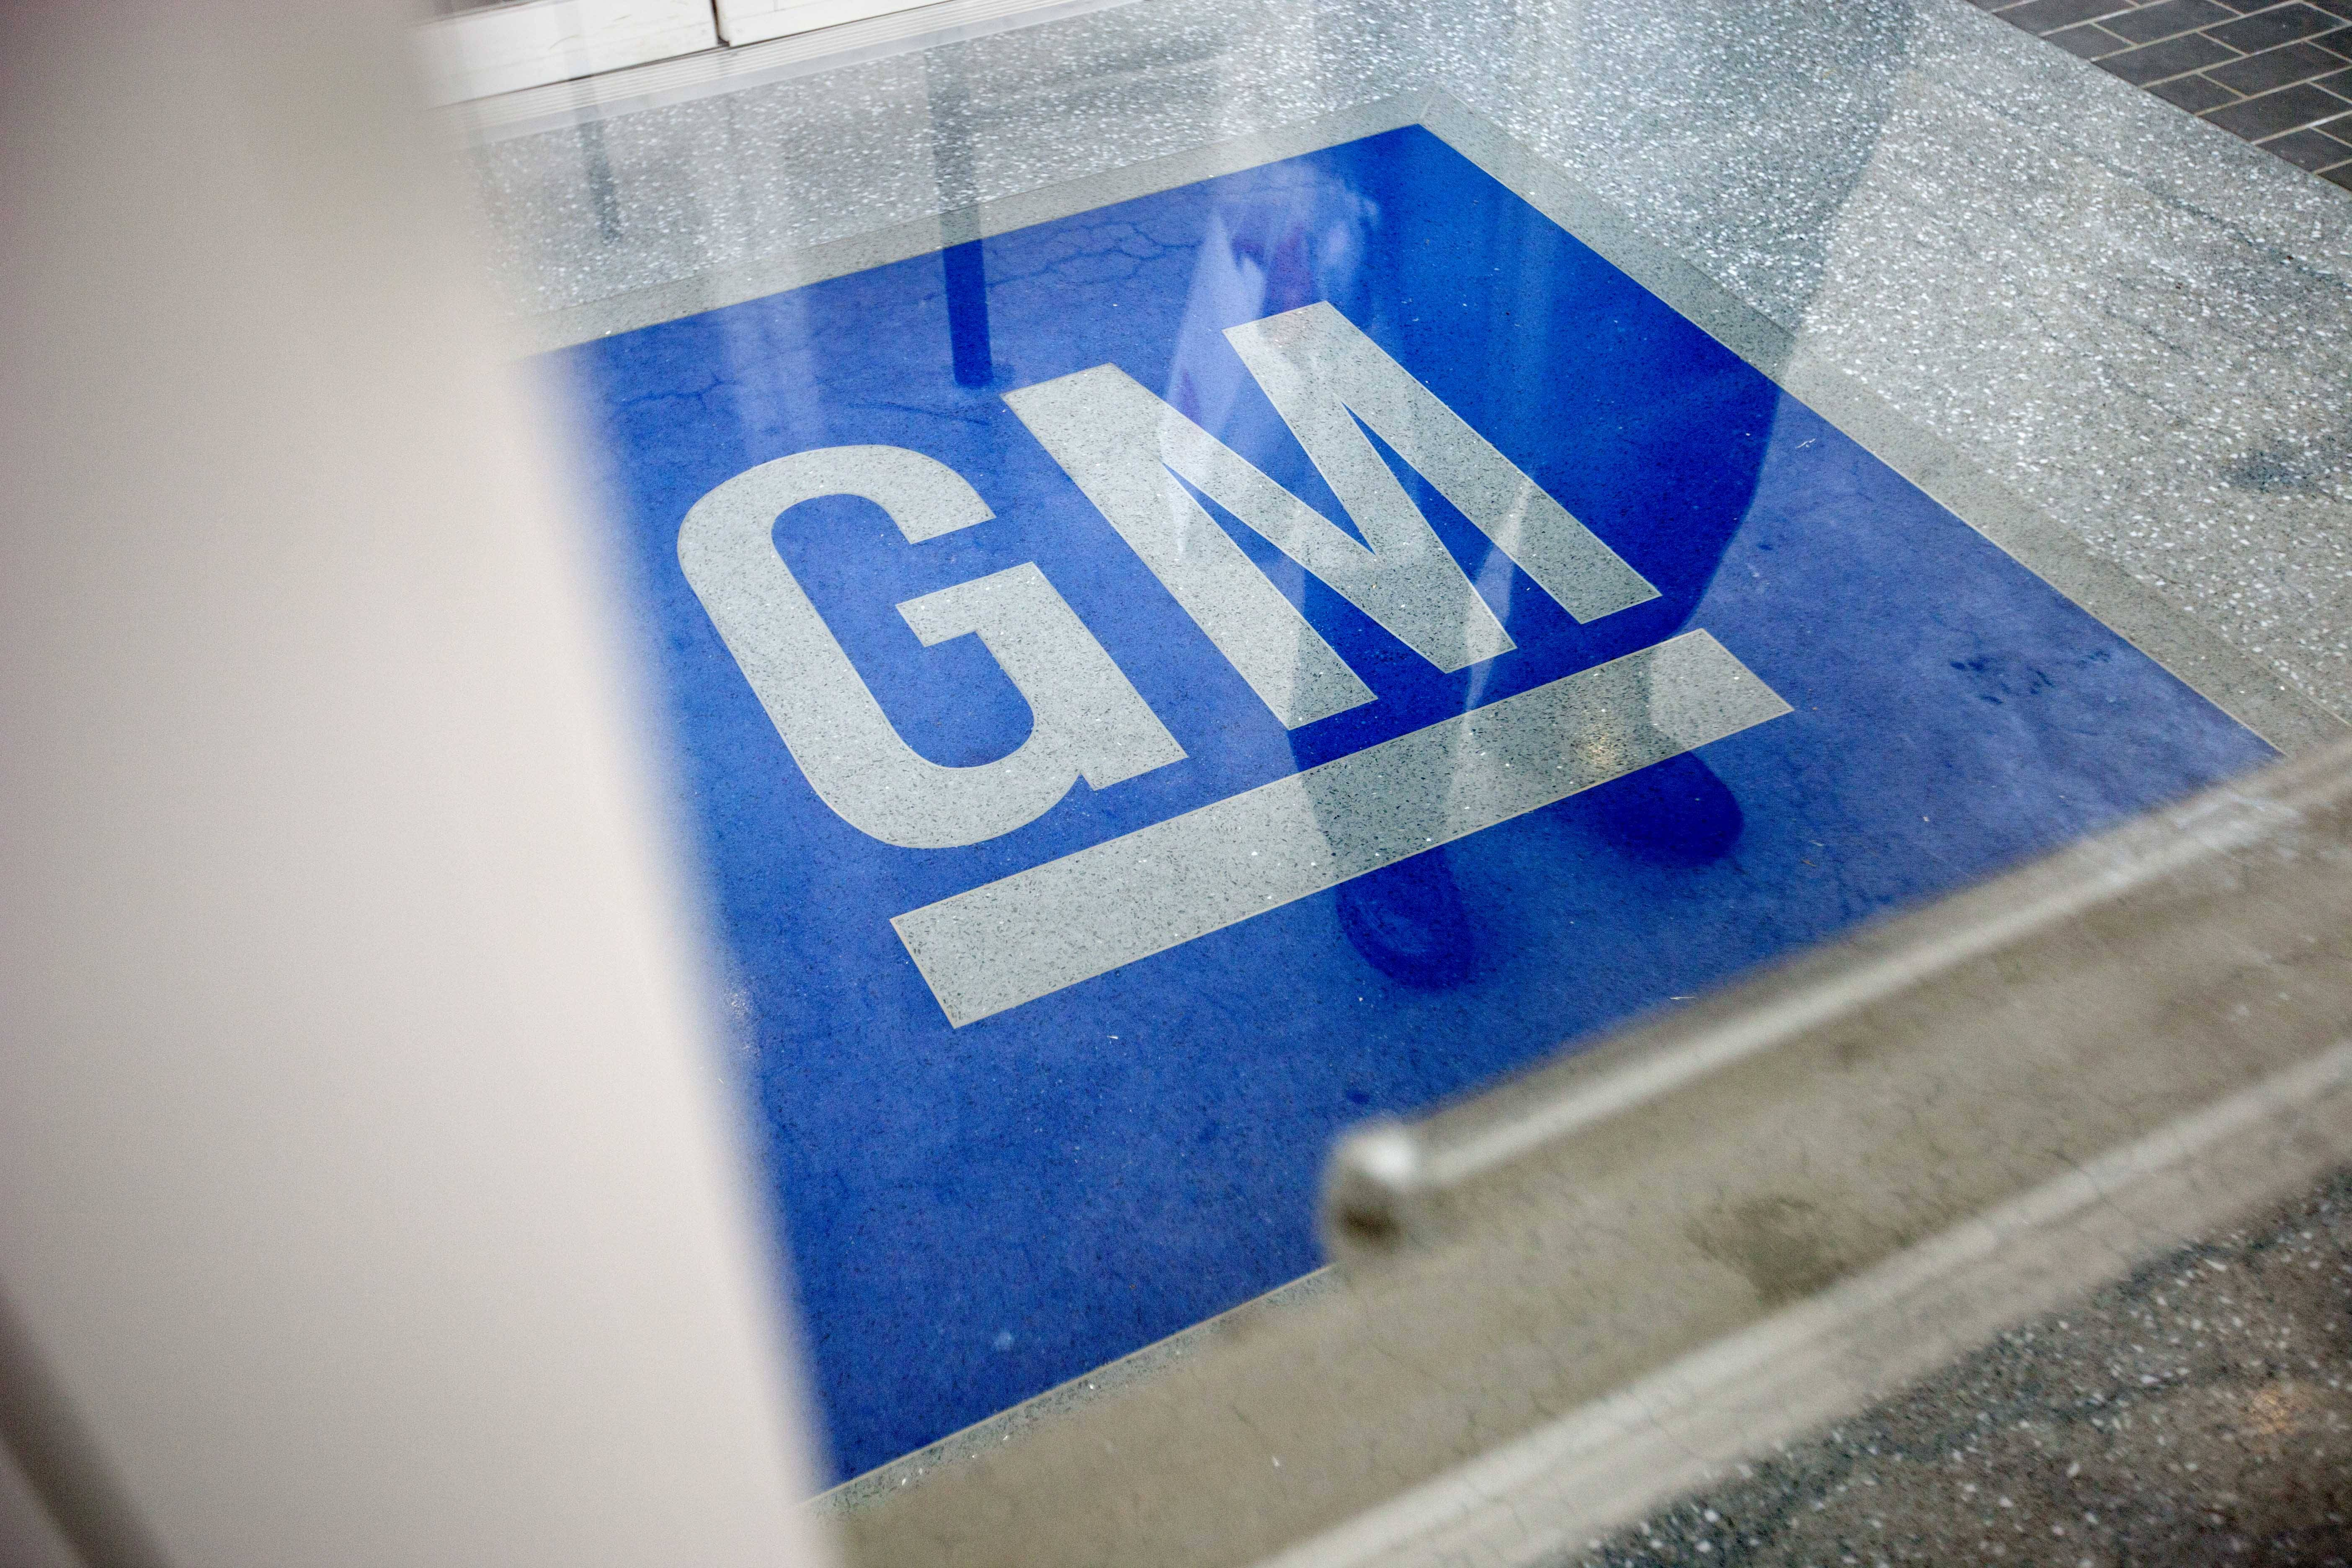 A congressional committee is investigating the way General Motors and a federal safety agency handled a deadly ignition switch problem in compact cars. House Energy and Commerce Committee Chairman Fred Upton of Michigan says the National Highway Traffic Safety Administration received a large number of complaints about the problem during the past decade. But GM didn't recall the 1.6 million cars worldwide until last month.